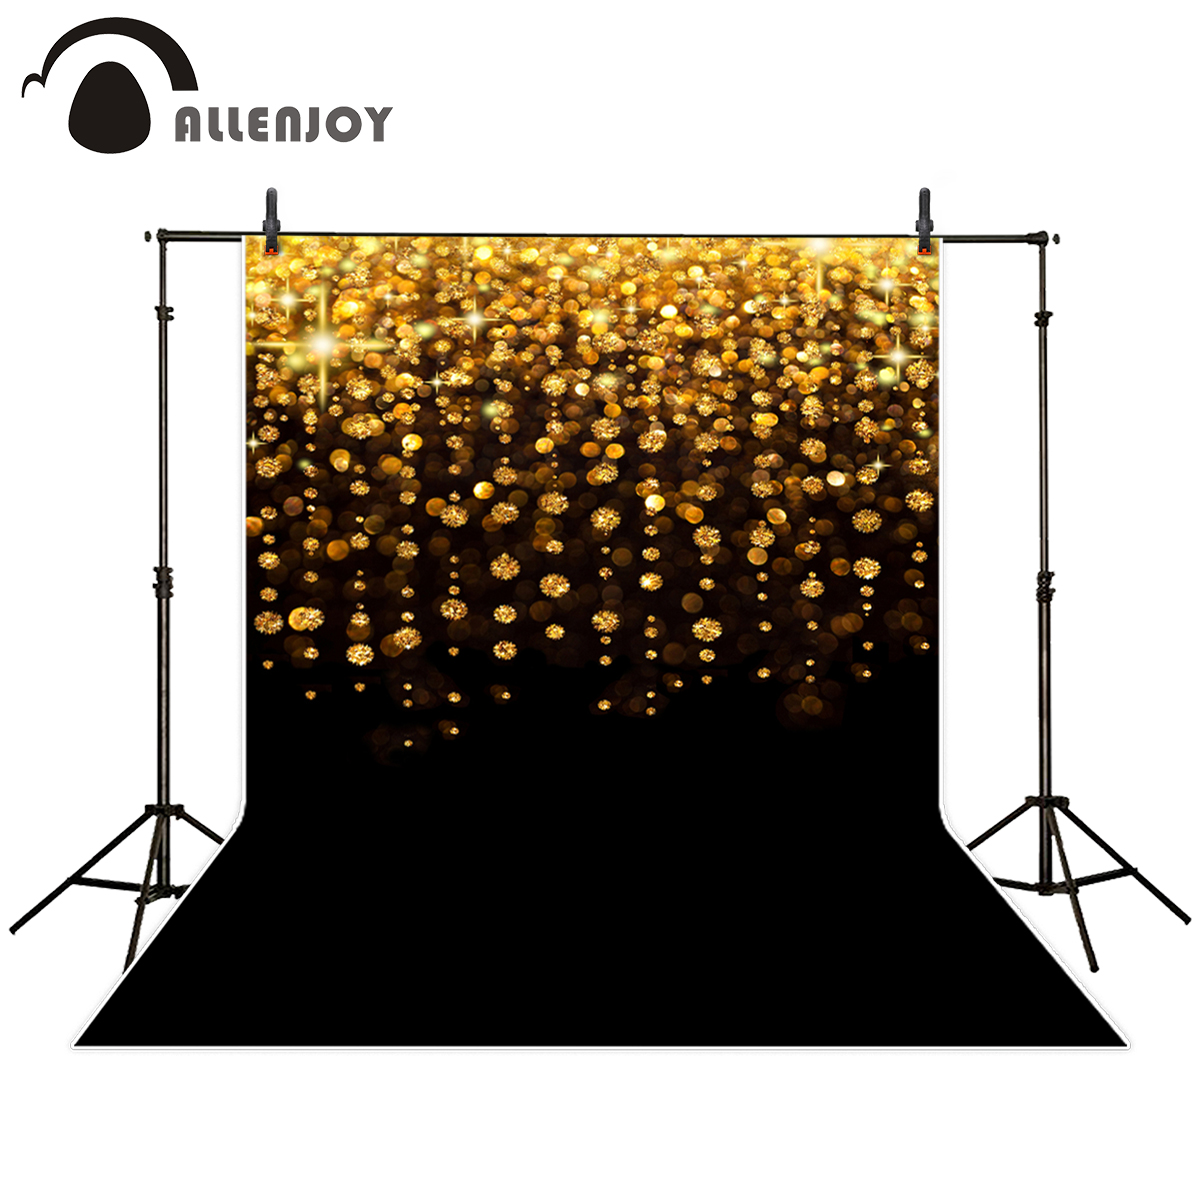 Allenjoy professional photography background black bottom gold dots glitter Bokeh backdrop photo studio photobooth photocall harman kardon onyx studio 2 black